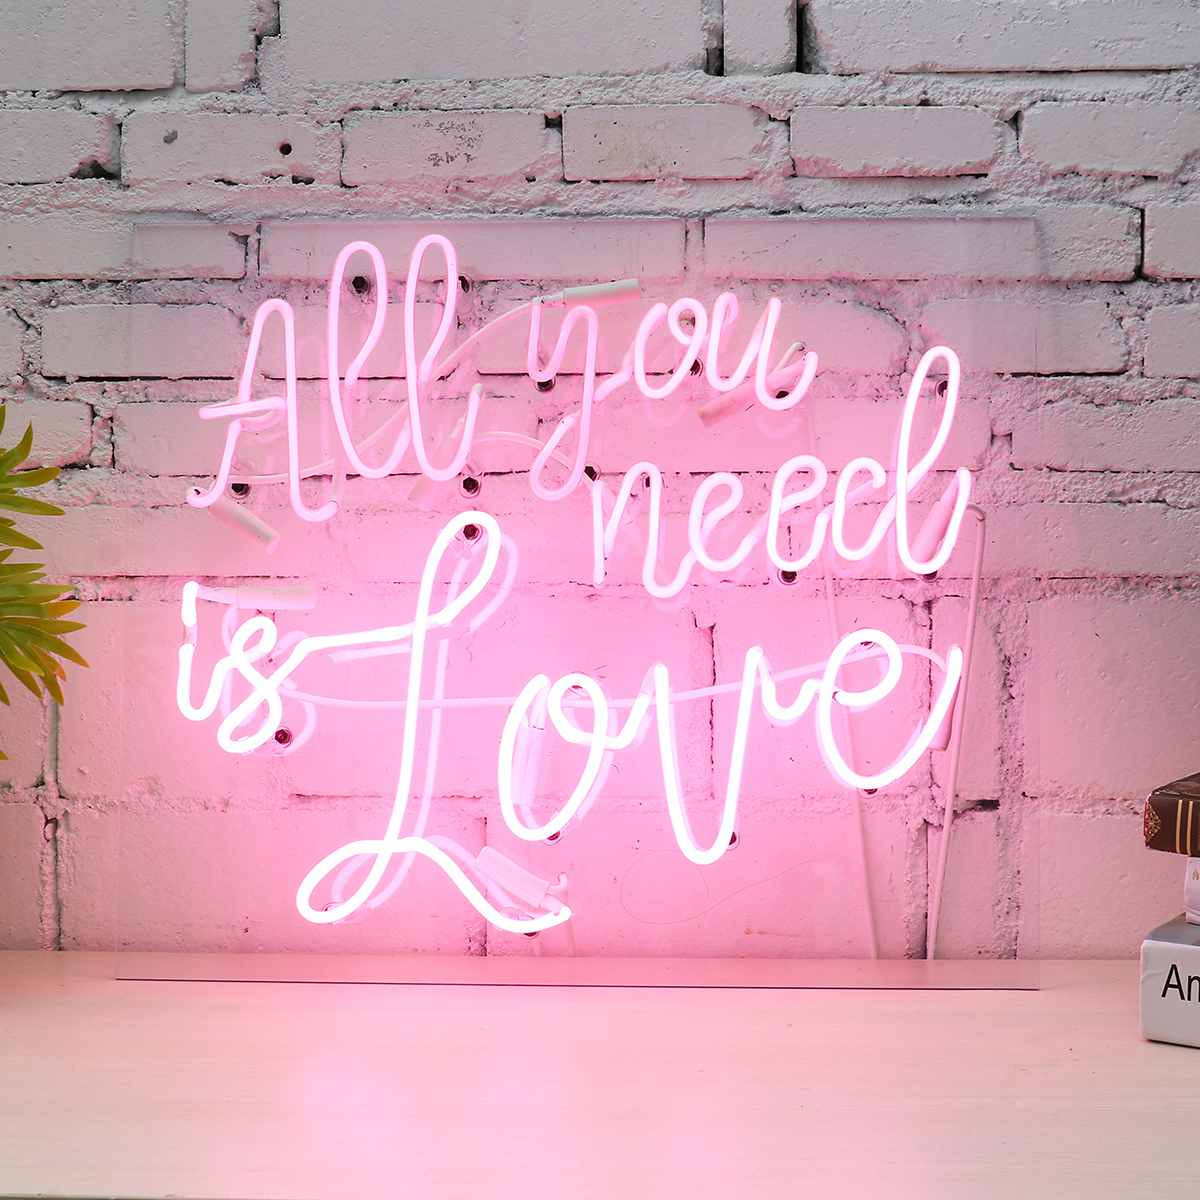 Pink All You Need Is Love Neon Sign LED Bar Club Wall Light Art Lamp Valentine's Wedding Party Decoration Holiday Lighting